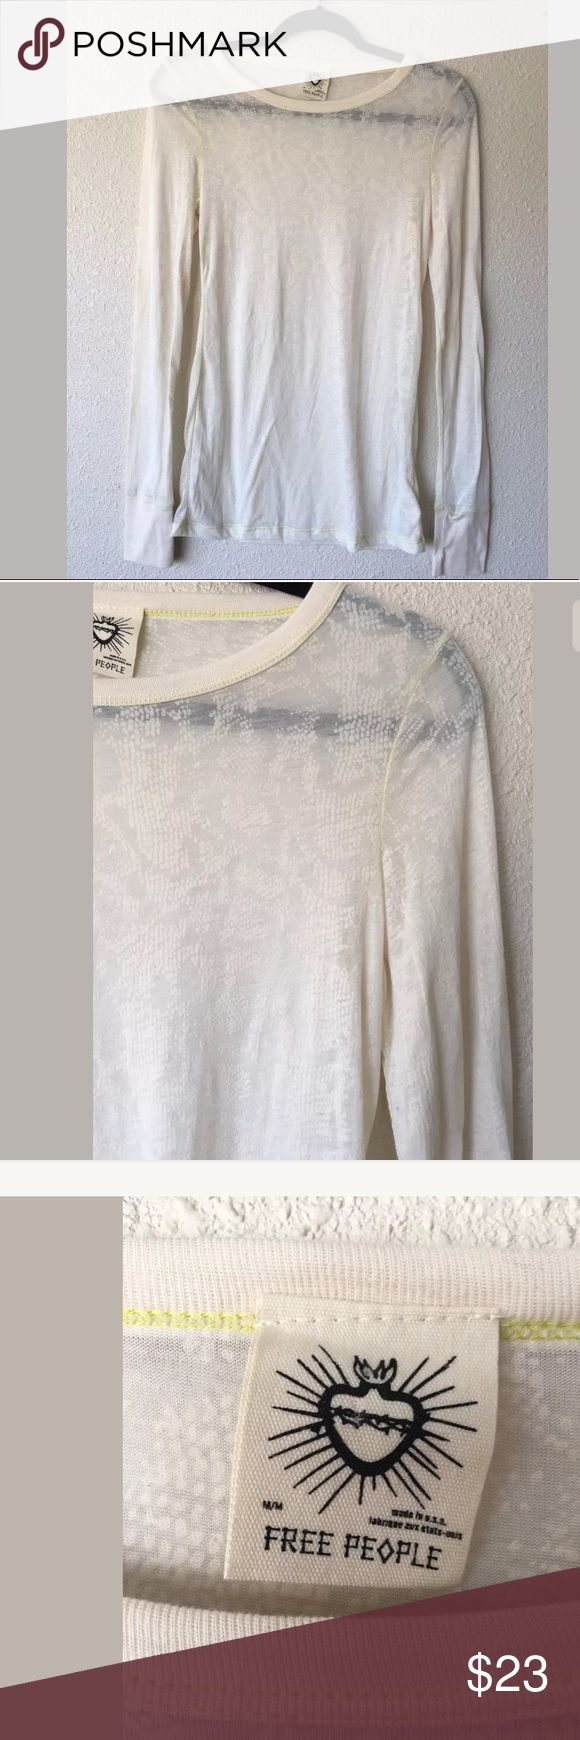 Free People long Sleeve sheer Tshirt Free People long Sleeve sheer Tshirt, snake skin light print, cream colored, size m, great condition, please feel free to make an offer (: Free People Tops Tees - Long Sleeve